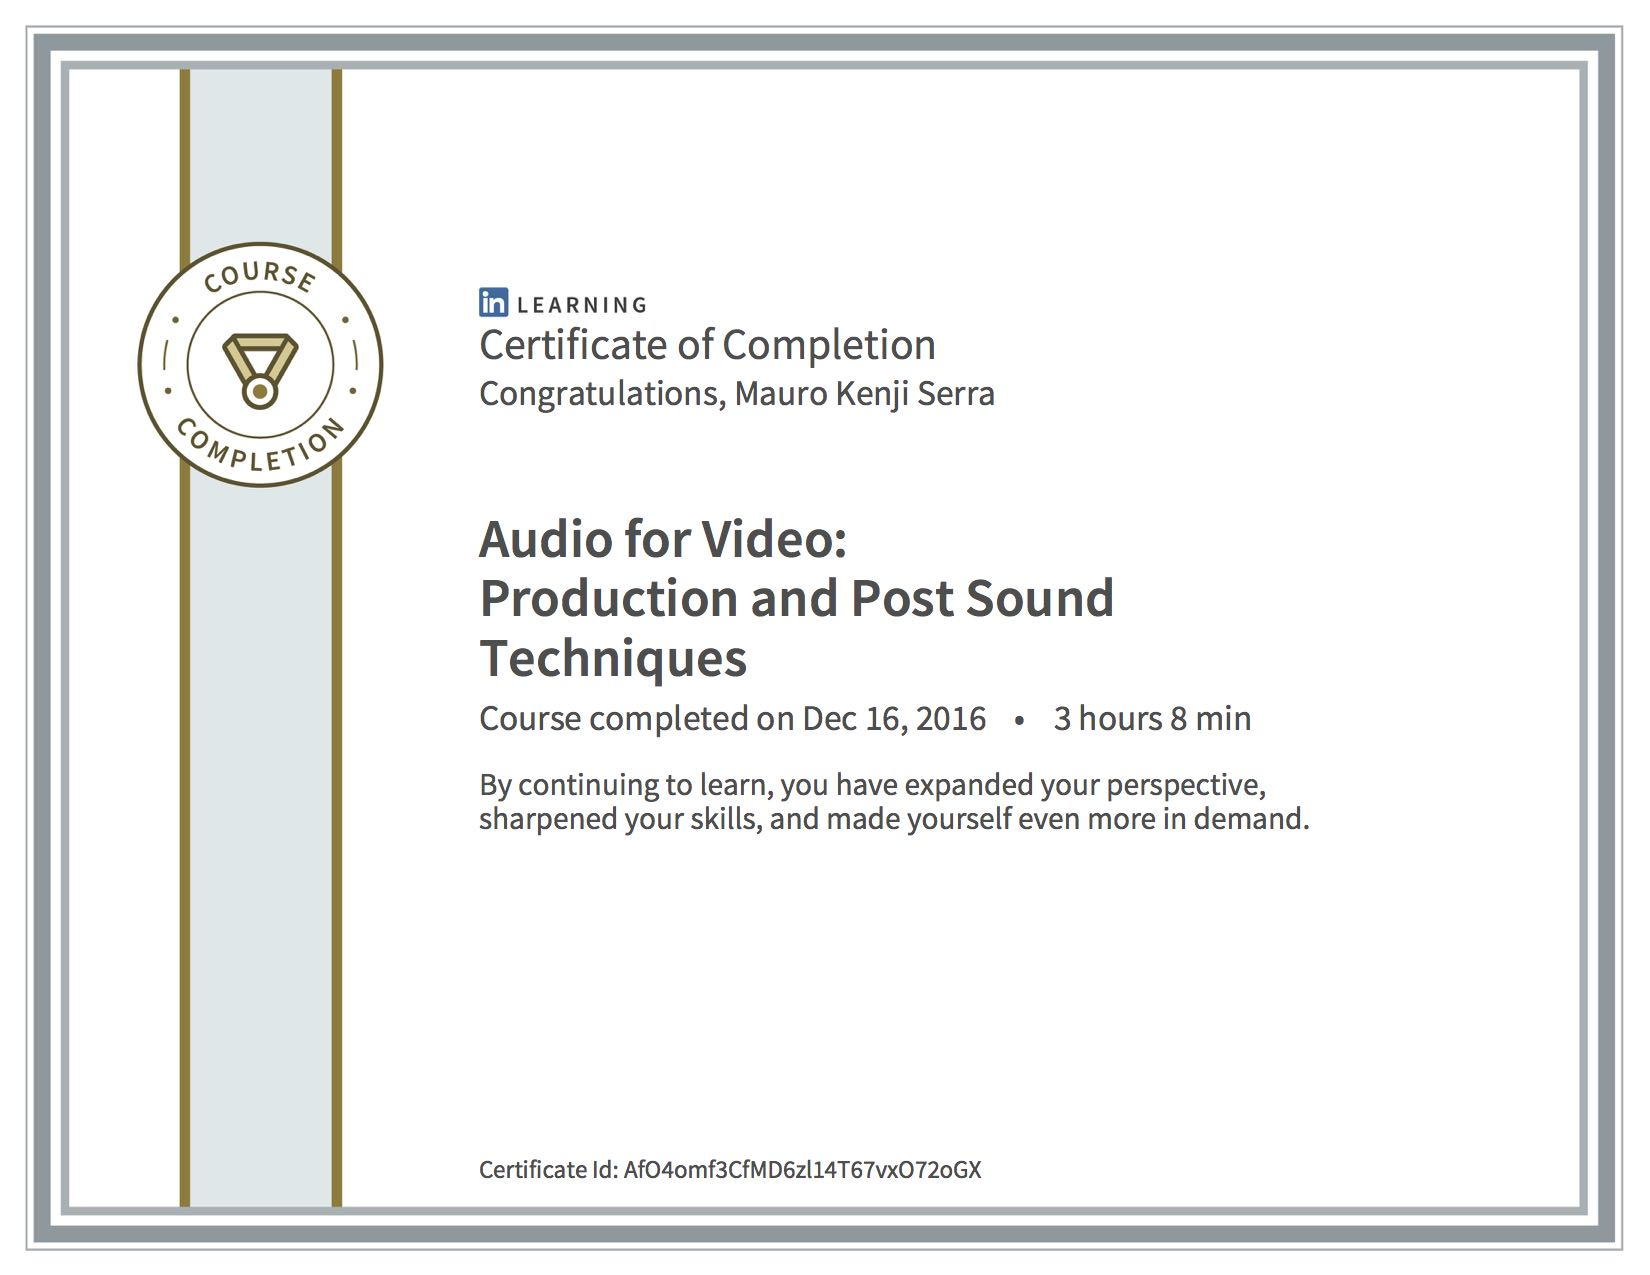 Audio For Video Production and Post